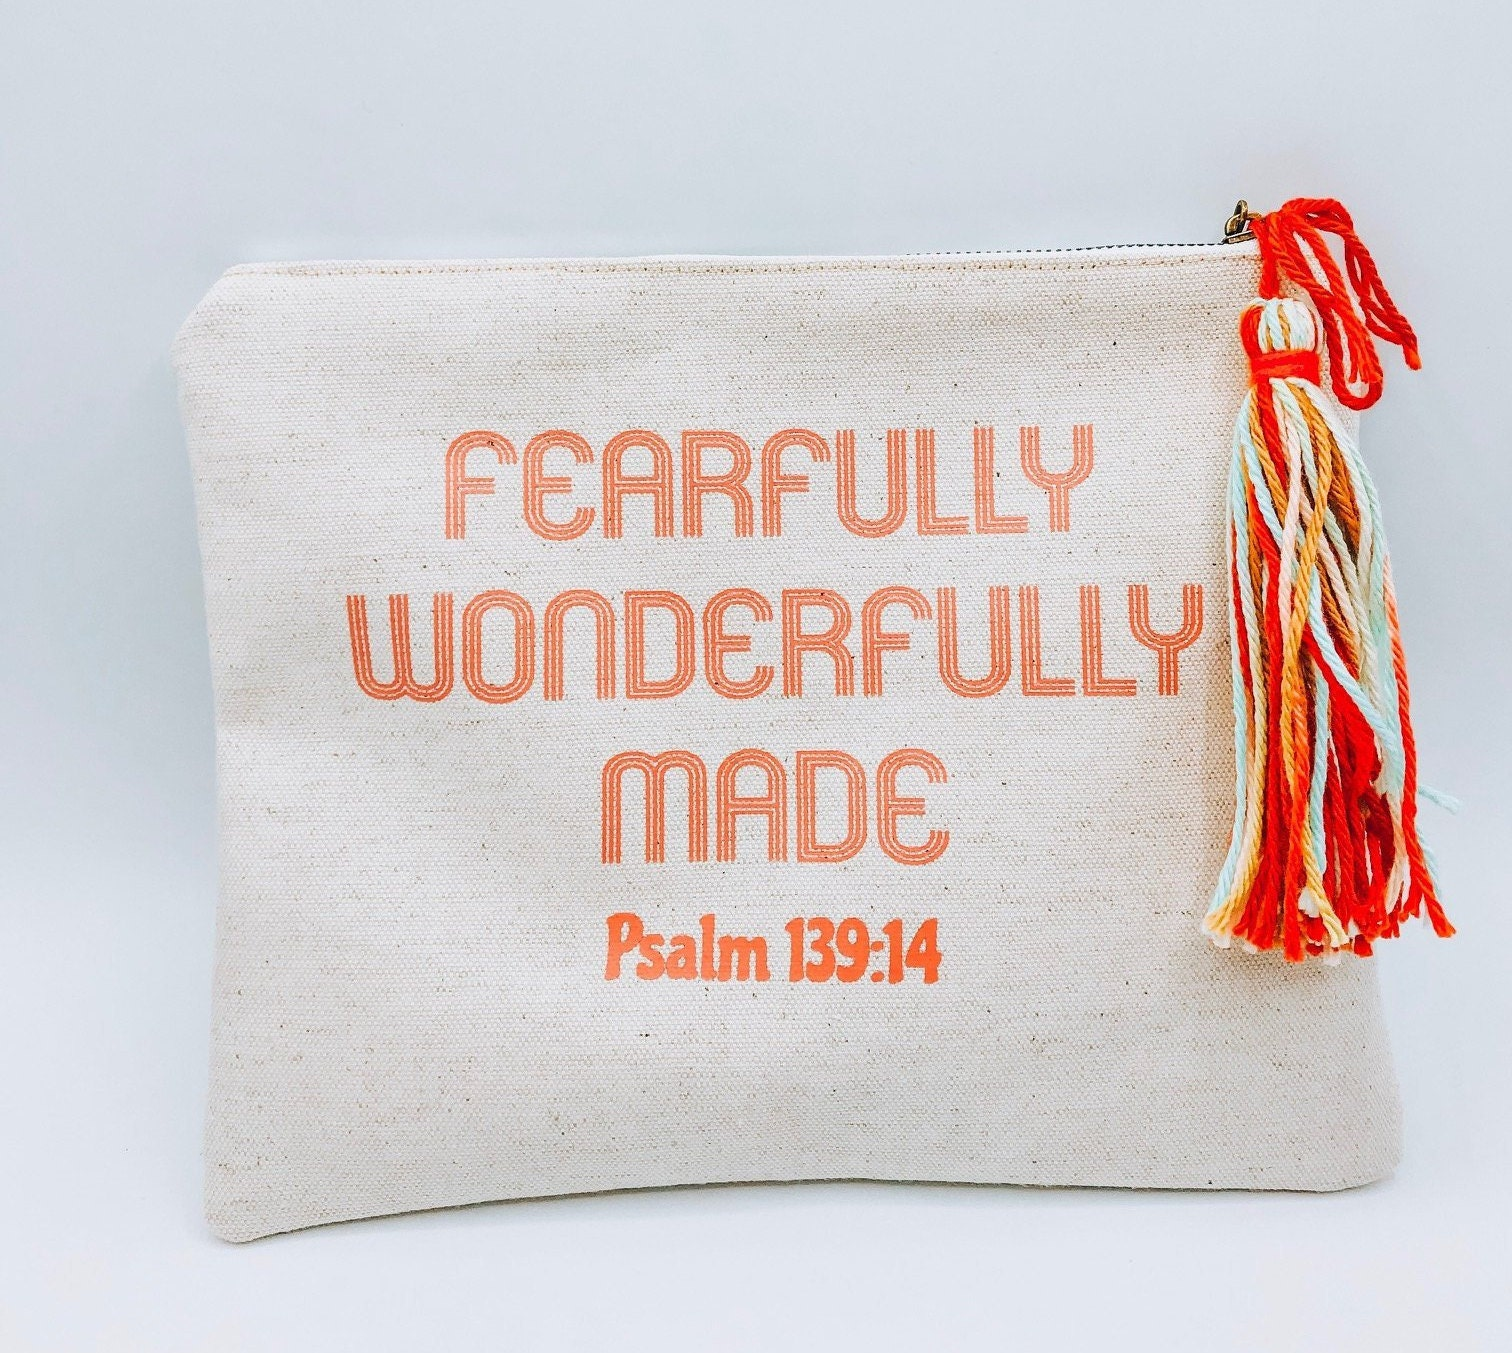 Psalm 139 14 meaning